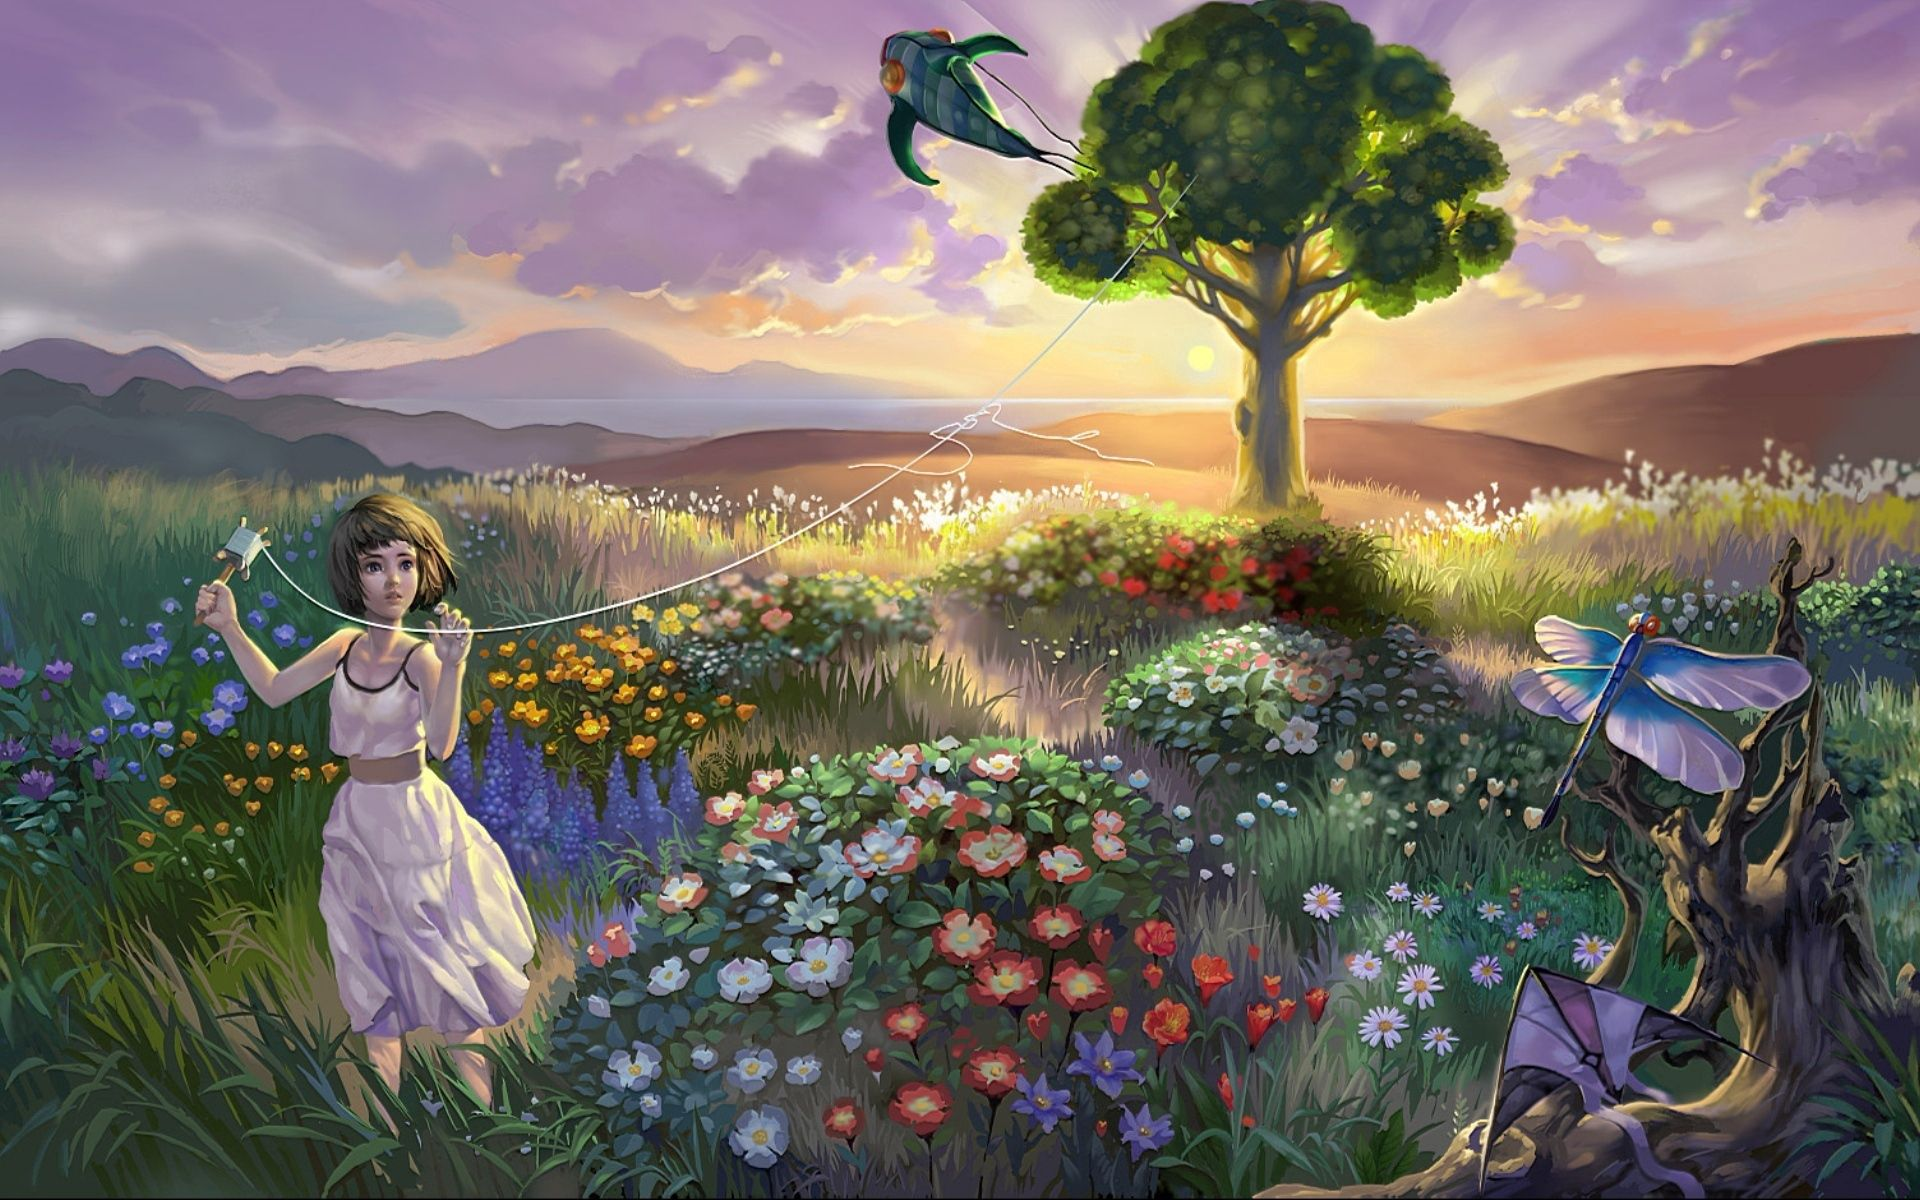 63327 download wallpaper Landscape, Flowers, Birds, Grass, Art, Girl, Child, Kite screensavers and pictures for free